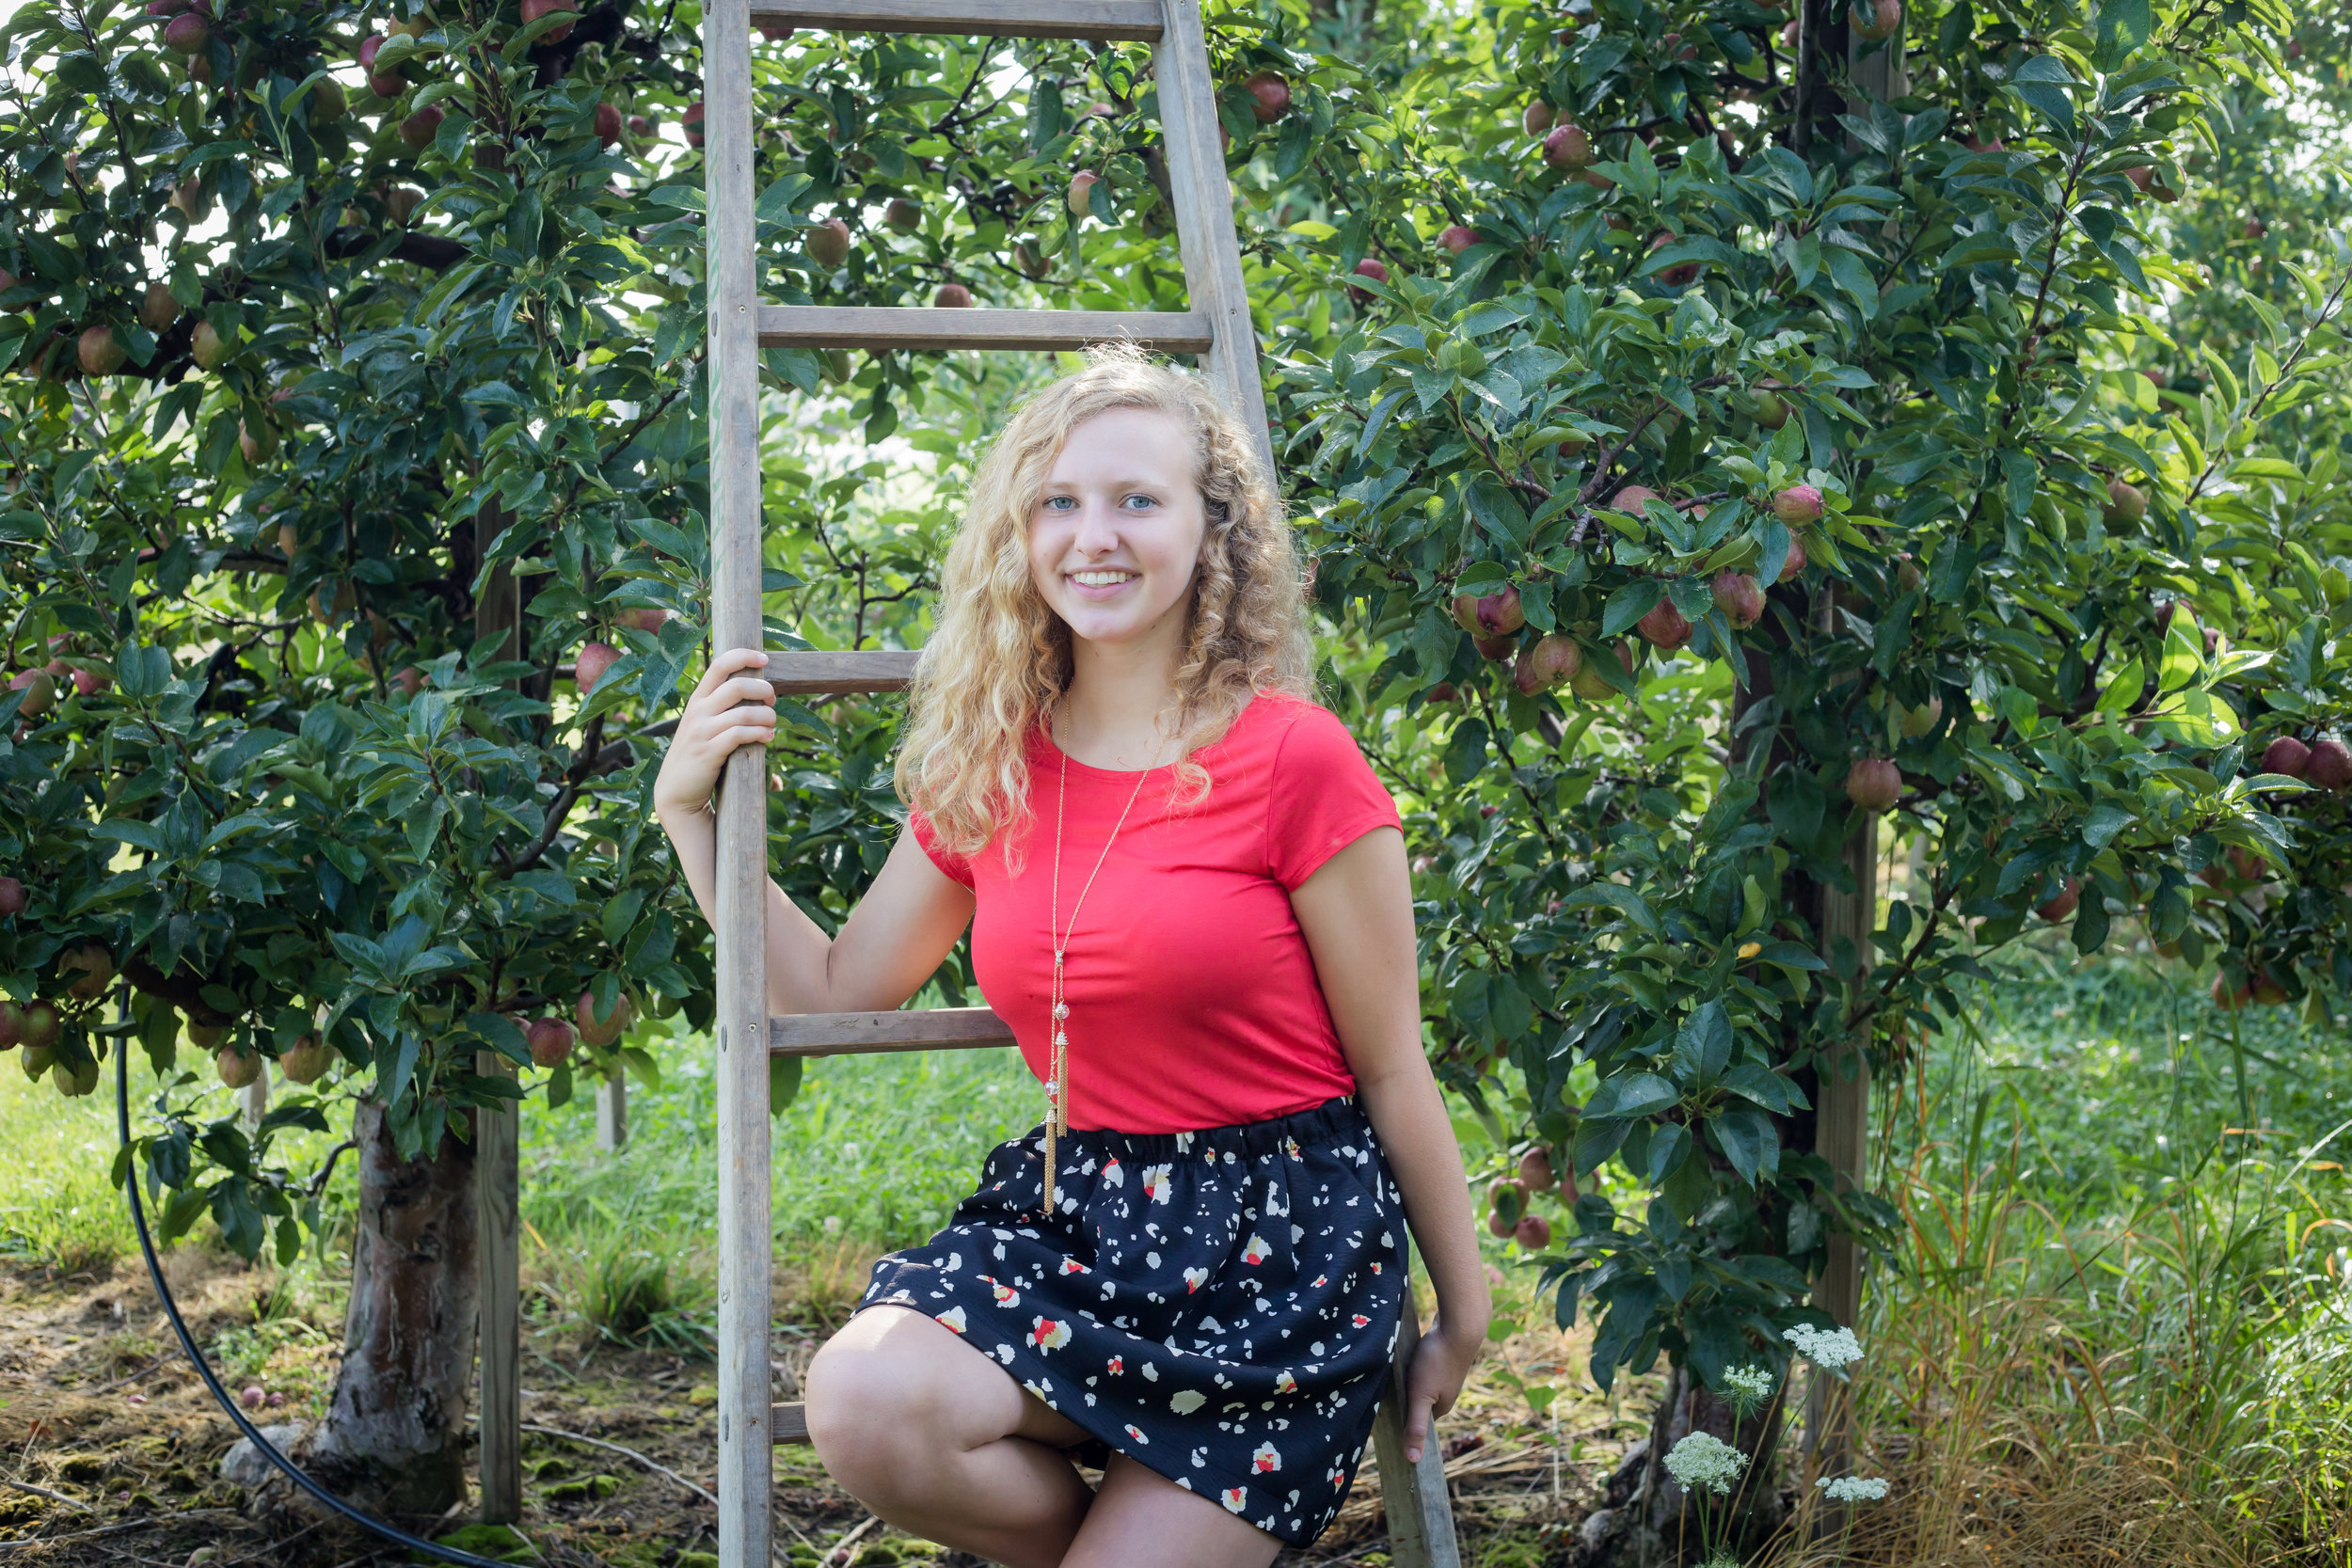 seniors photos in apple orchard sitting on ladder red top skirt